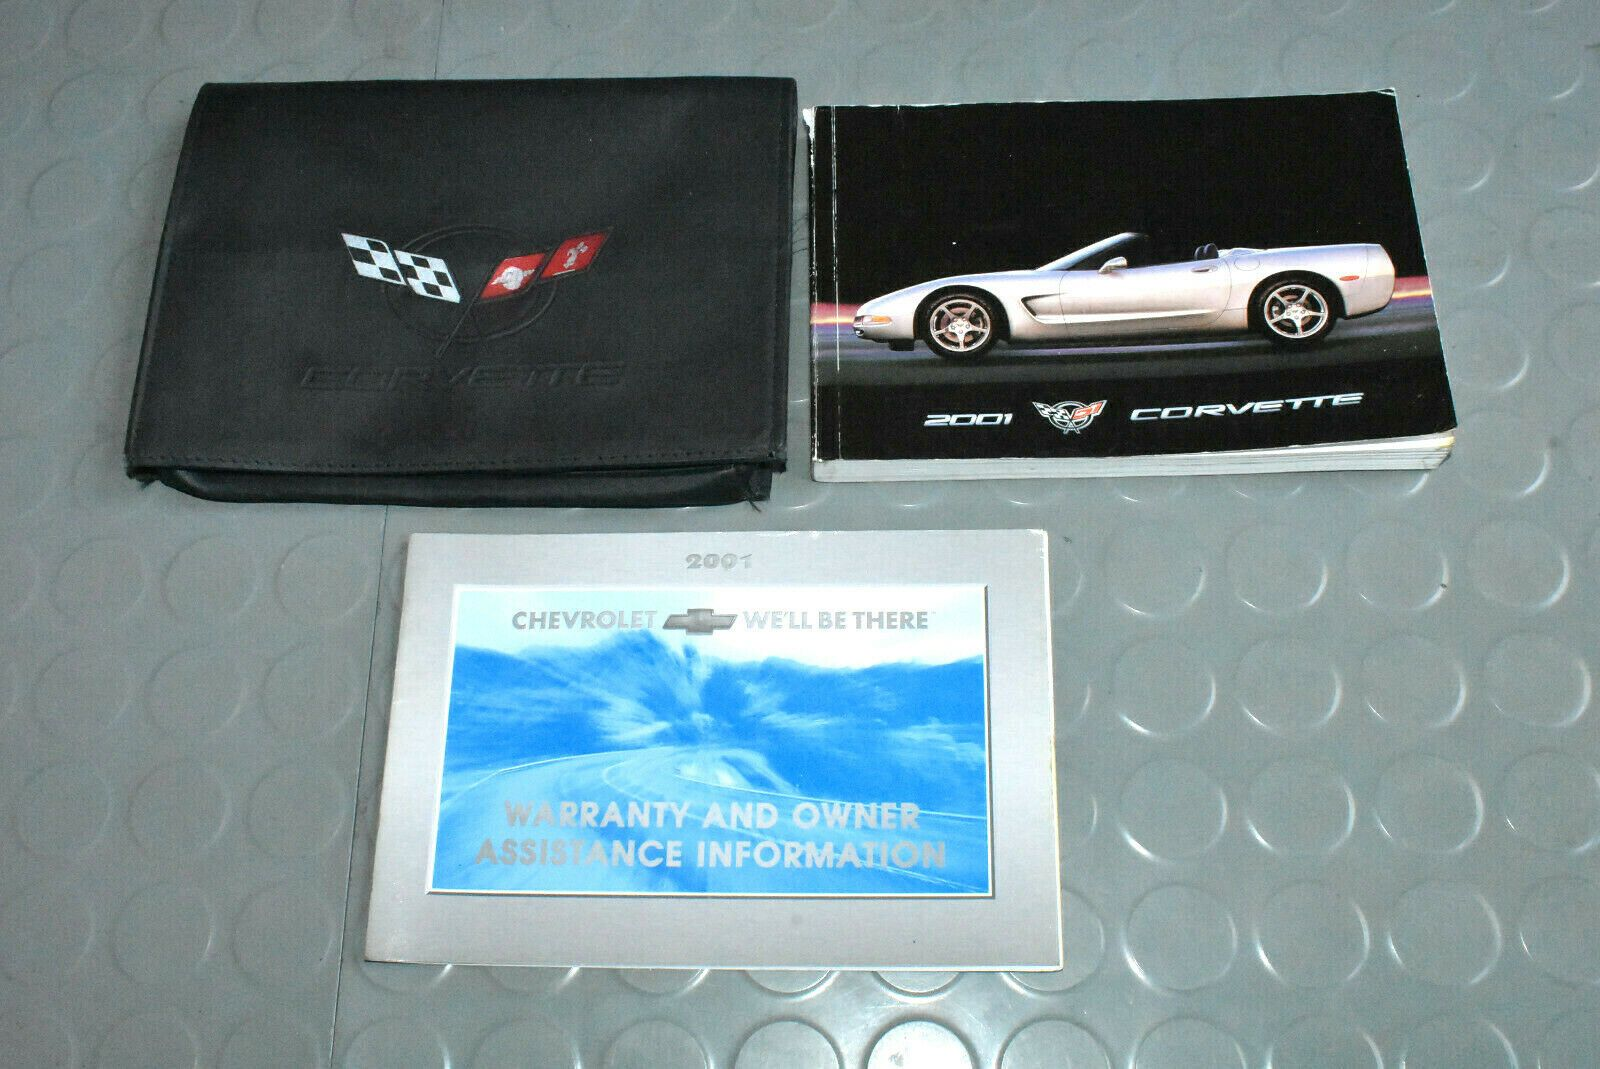 2001 Chevrolet Corvette Owners Manual Set In 2020 Chevrolet Corvette Chevrolet Corvette